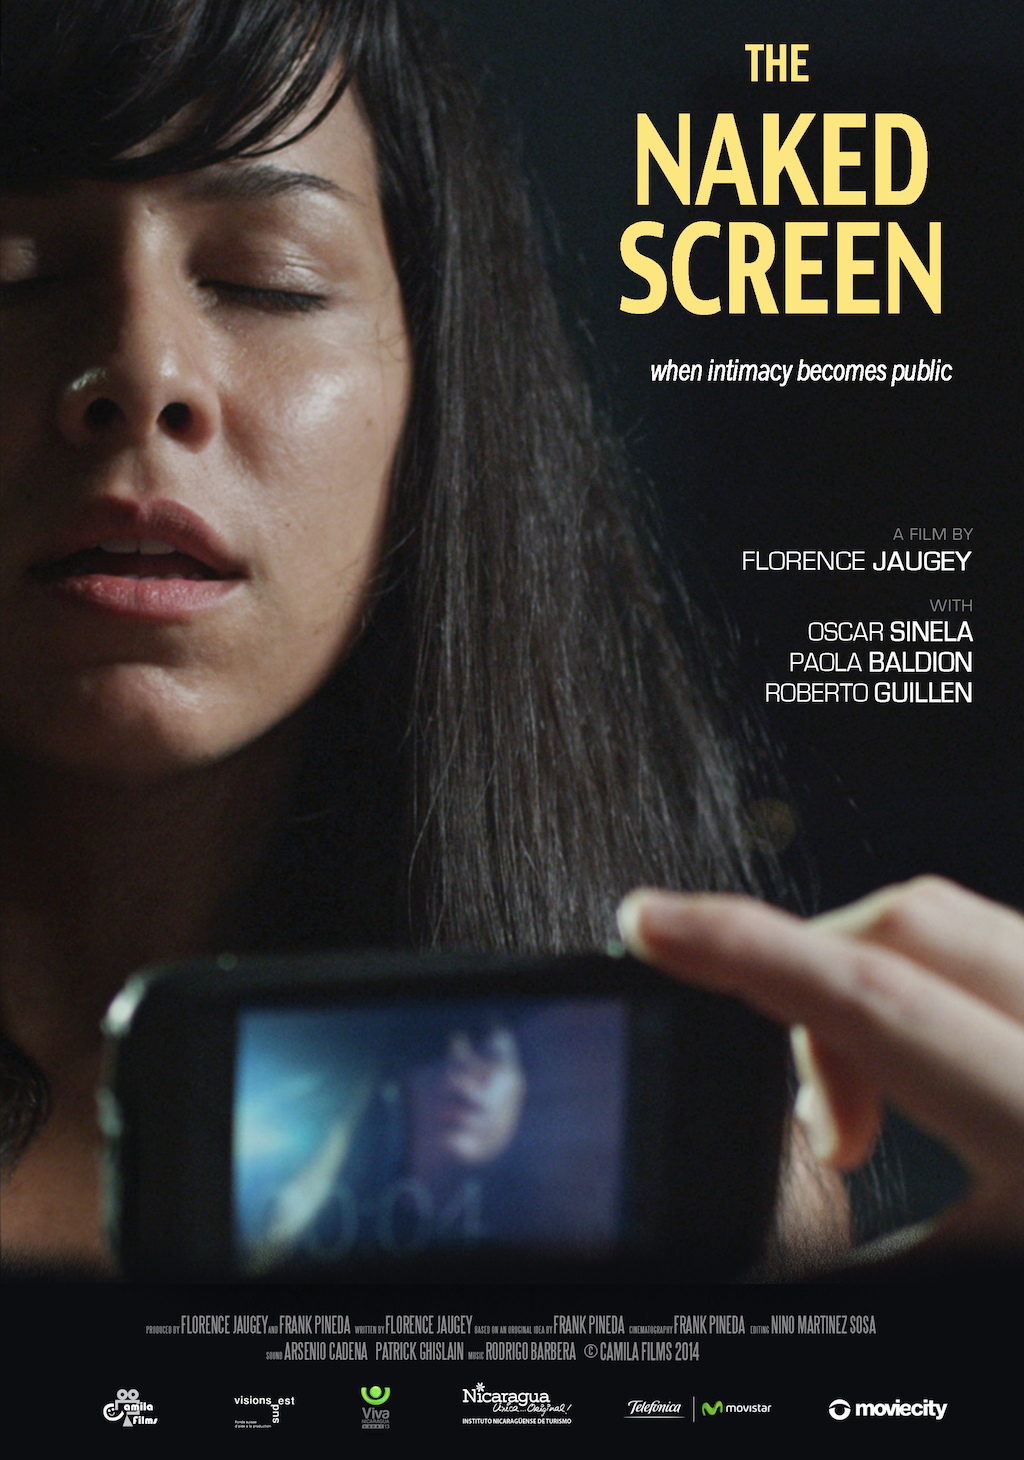 The Naked Screen